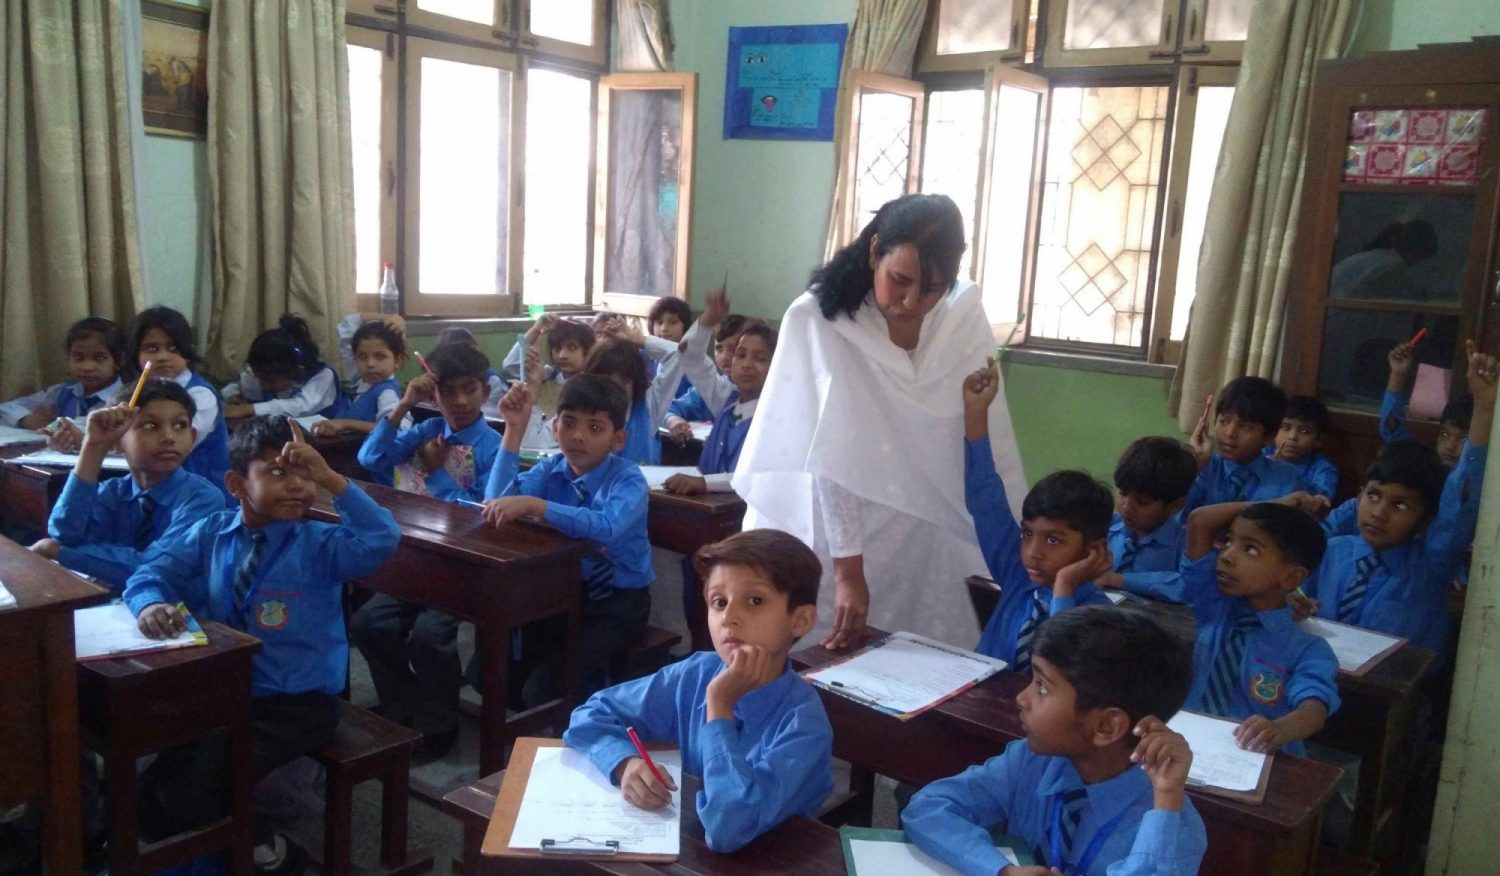 Maria Daniel SL is shown working with students in a classroom.